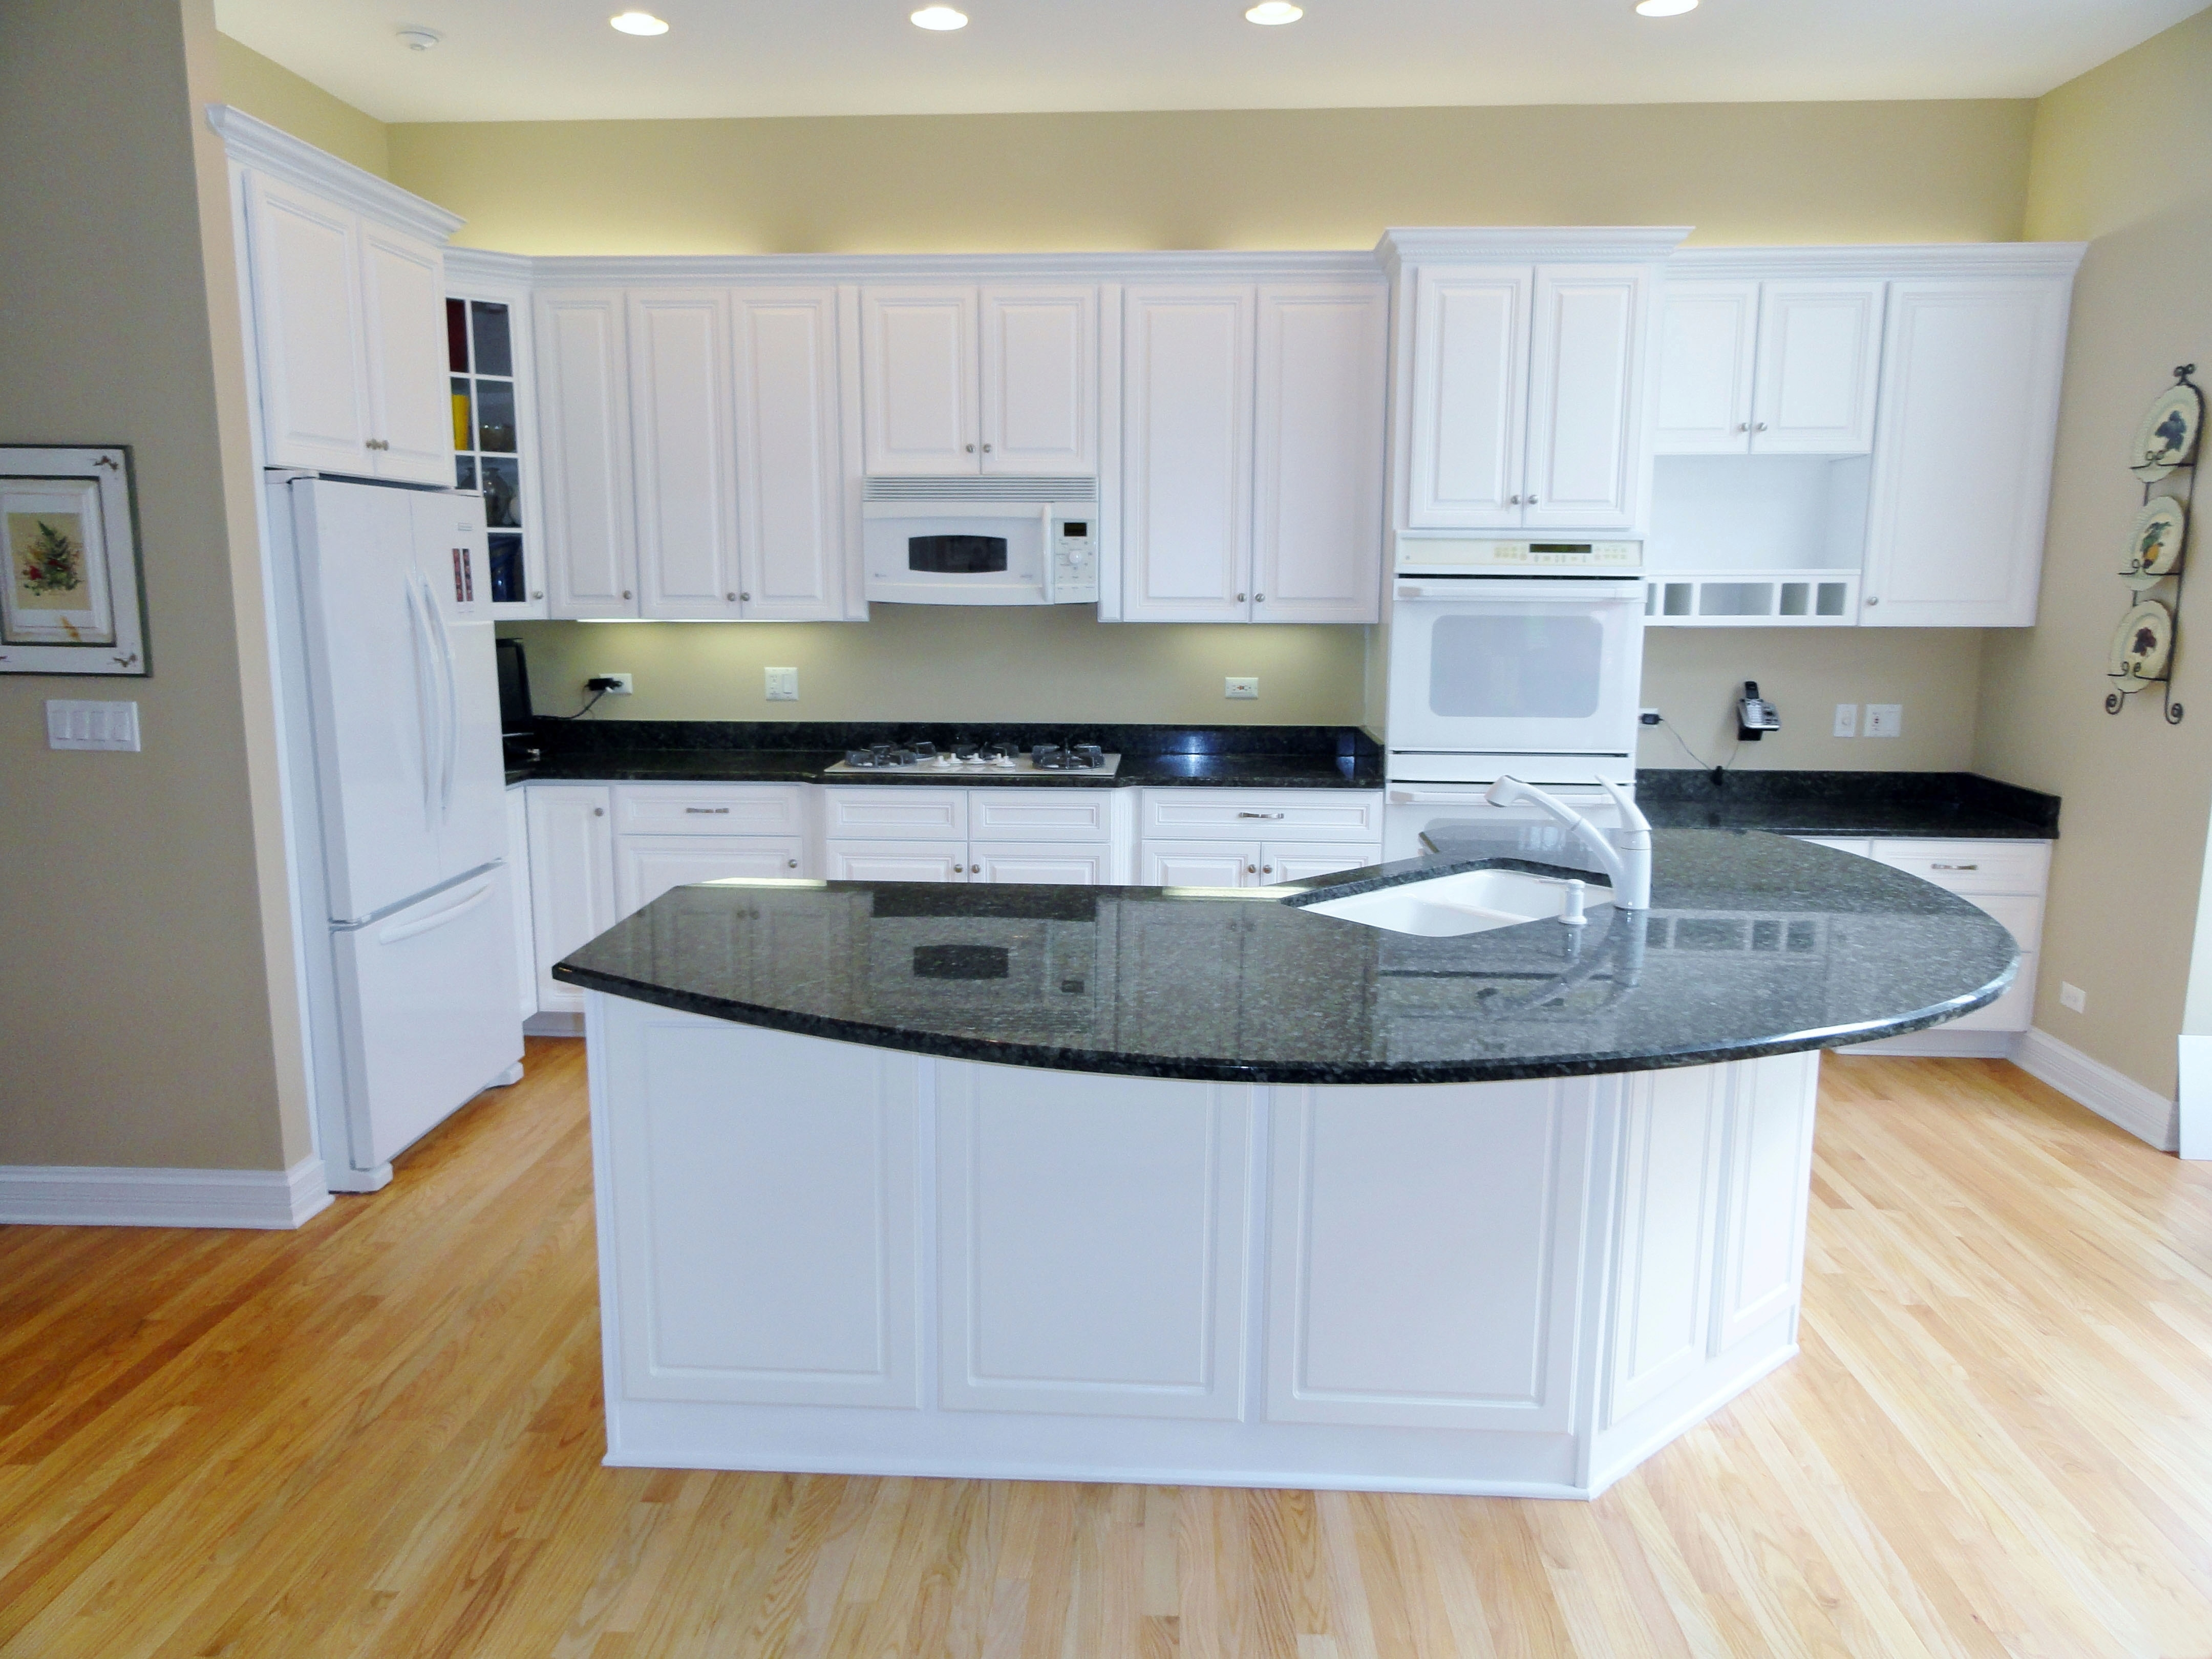 Refacing White Laminate Kitchen Cabinetsphotos affordable cabinet refacing nu look kitchens